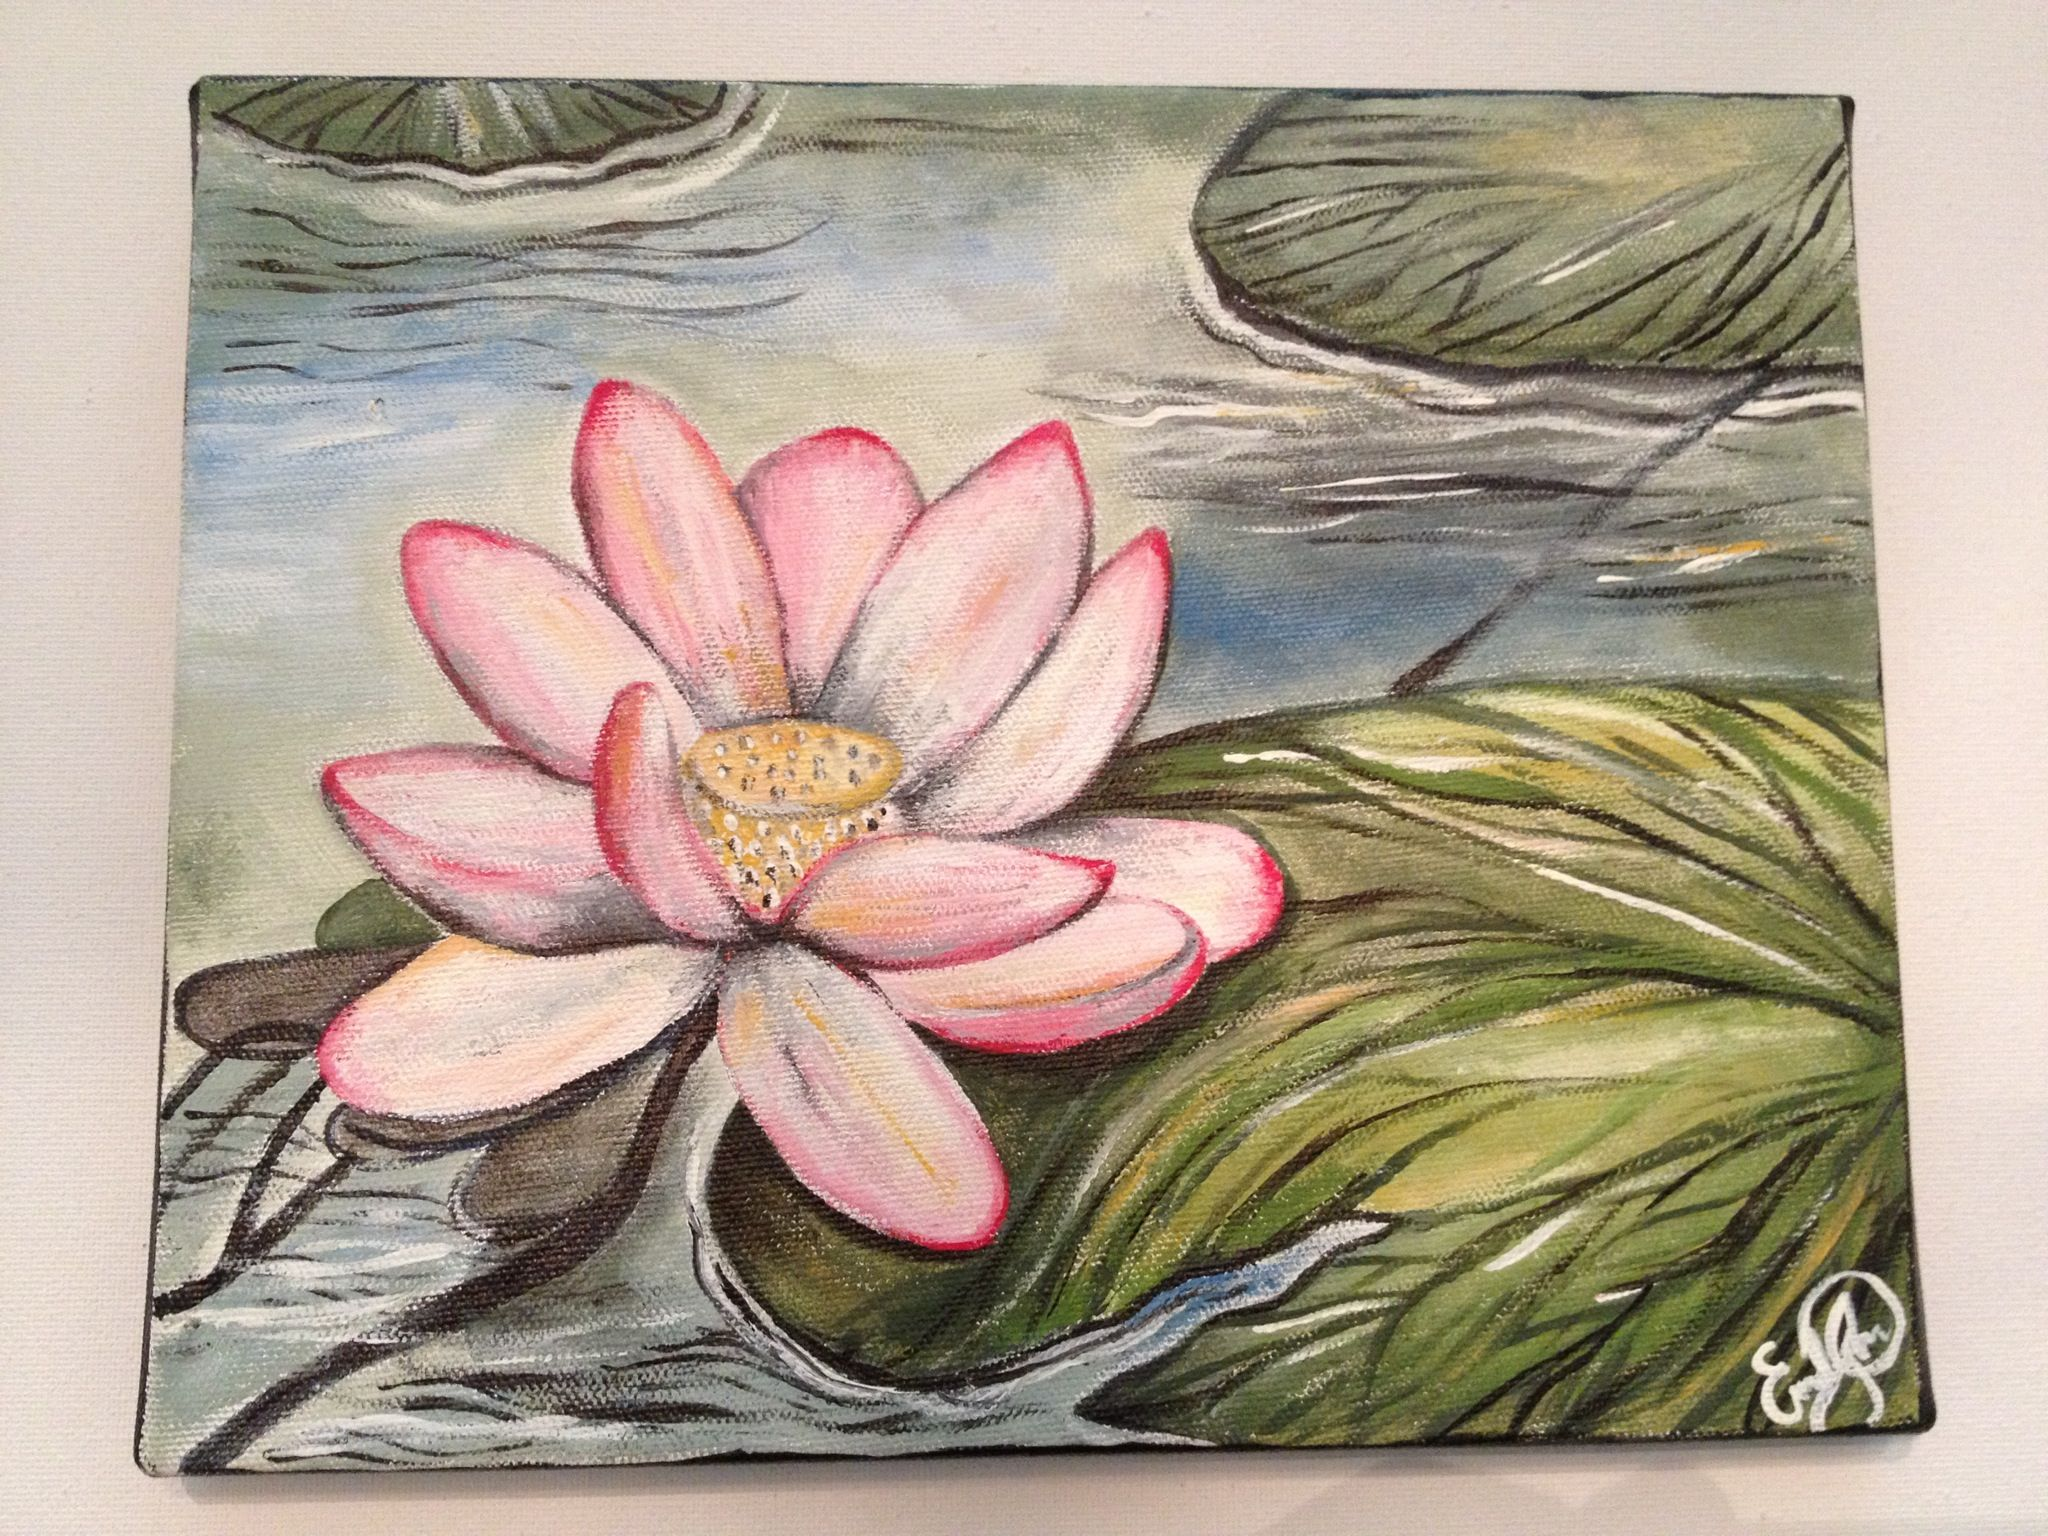 Lotus flower and lily pads by emily doerr my painting for sale on lotus flower and lily pads by emily doerr my painting for sale on etsy izmirmasajfo